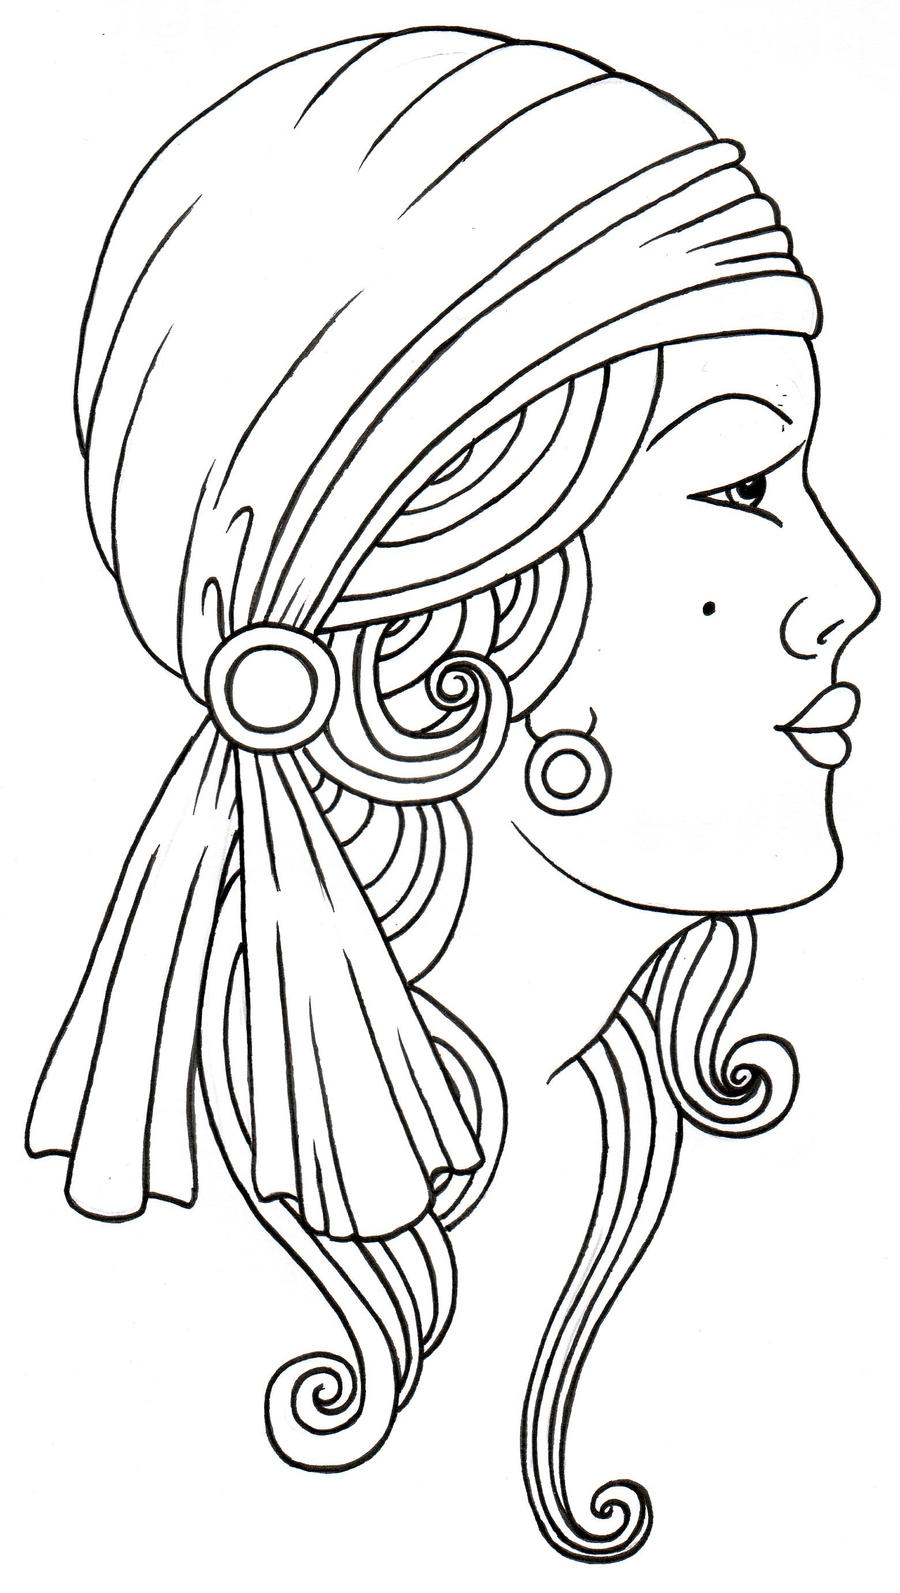 Tattoo Drawing Outline : Gypsy lady luck tattoo by vikingtattoo on deviantart